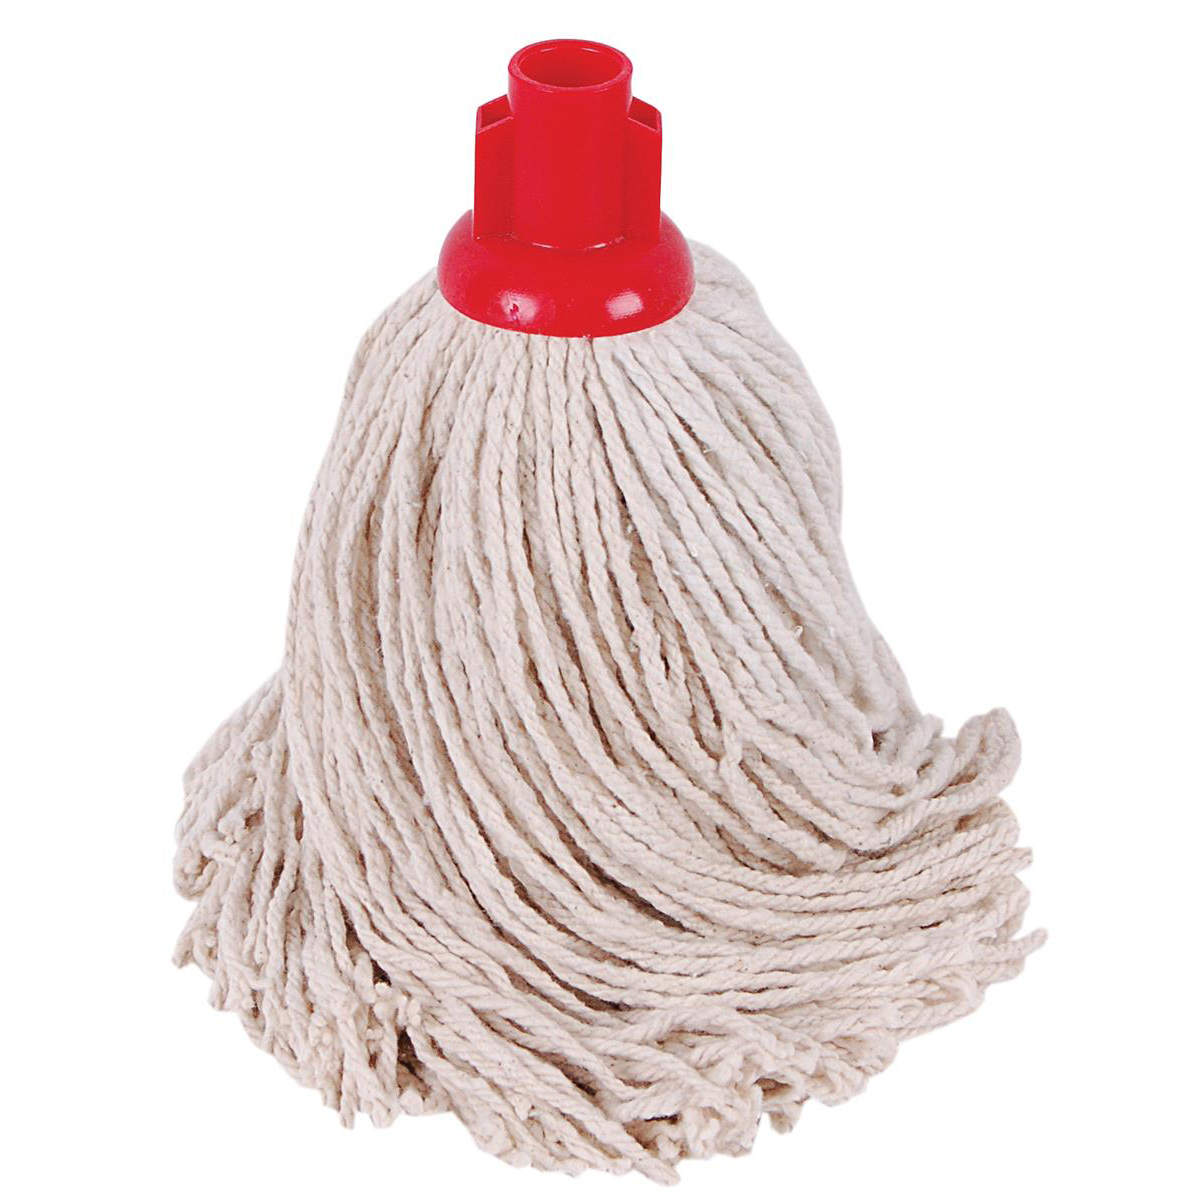 Robert Scott & Sons Socket Mop for Smooth Surfaces PY 16oz Red Ref 101876RED [Pack 10]